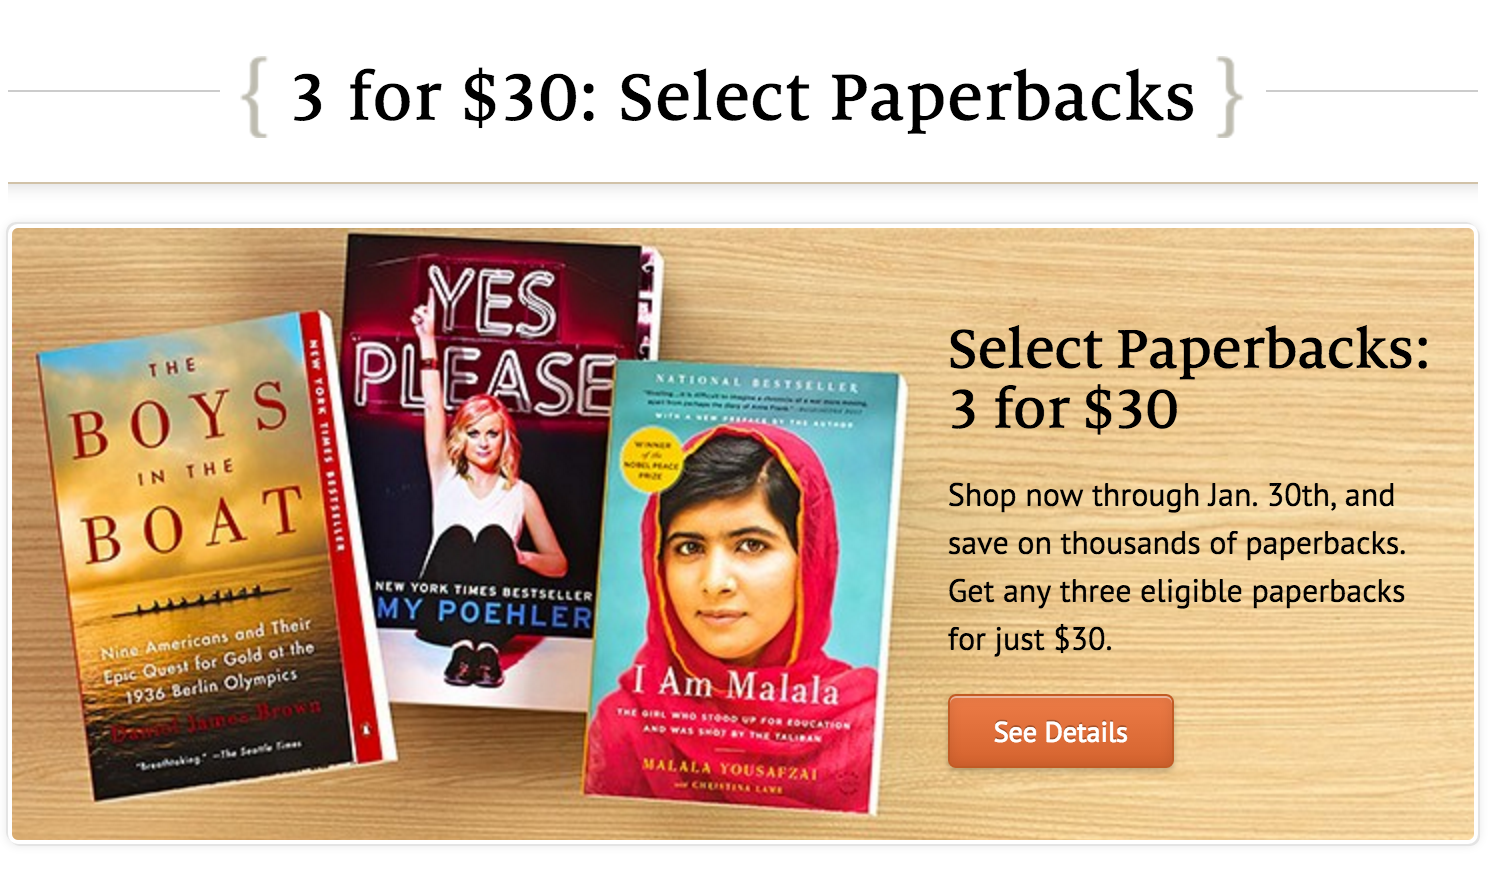 Barnes & Noble: 3 for $30 Paperbacks!